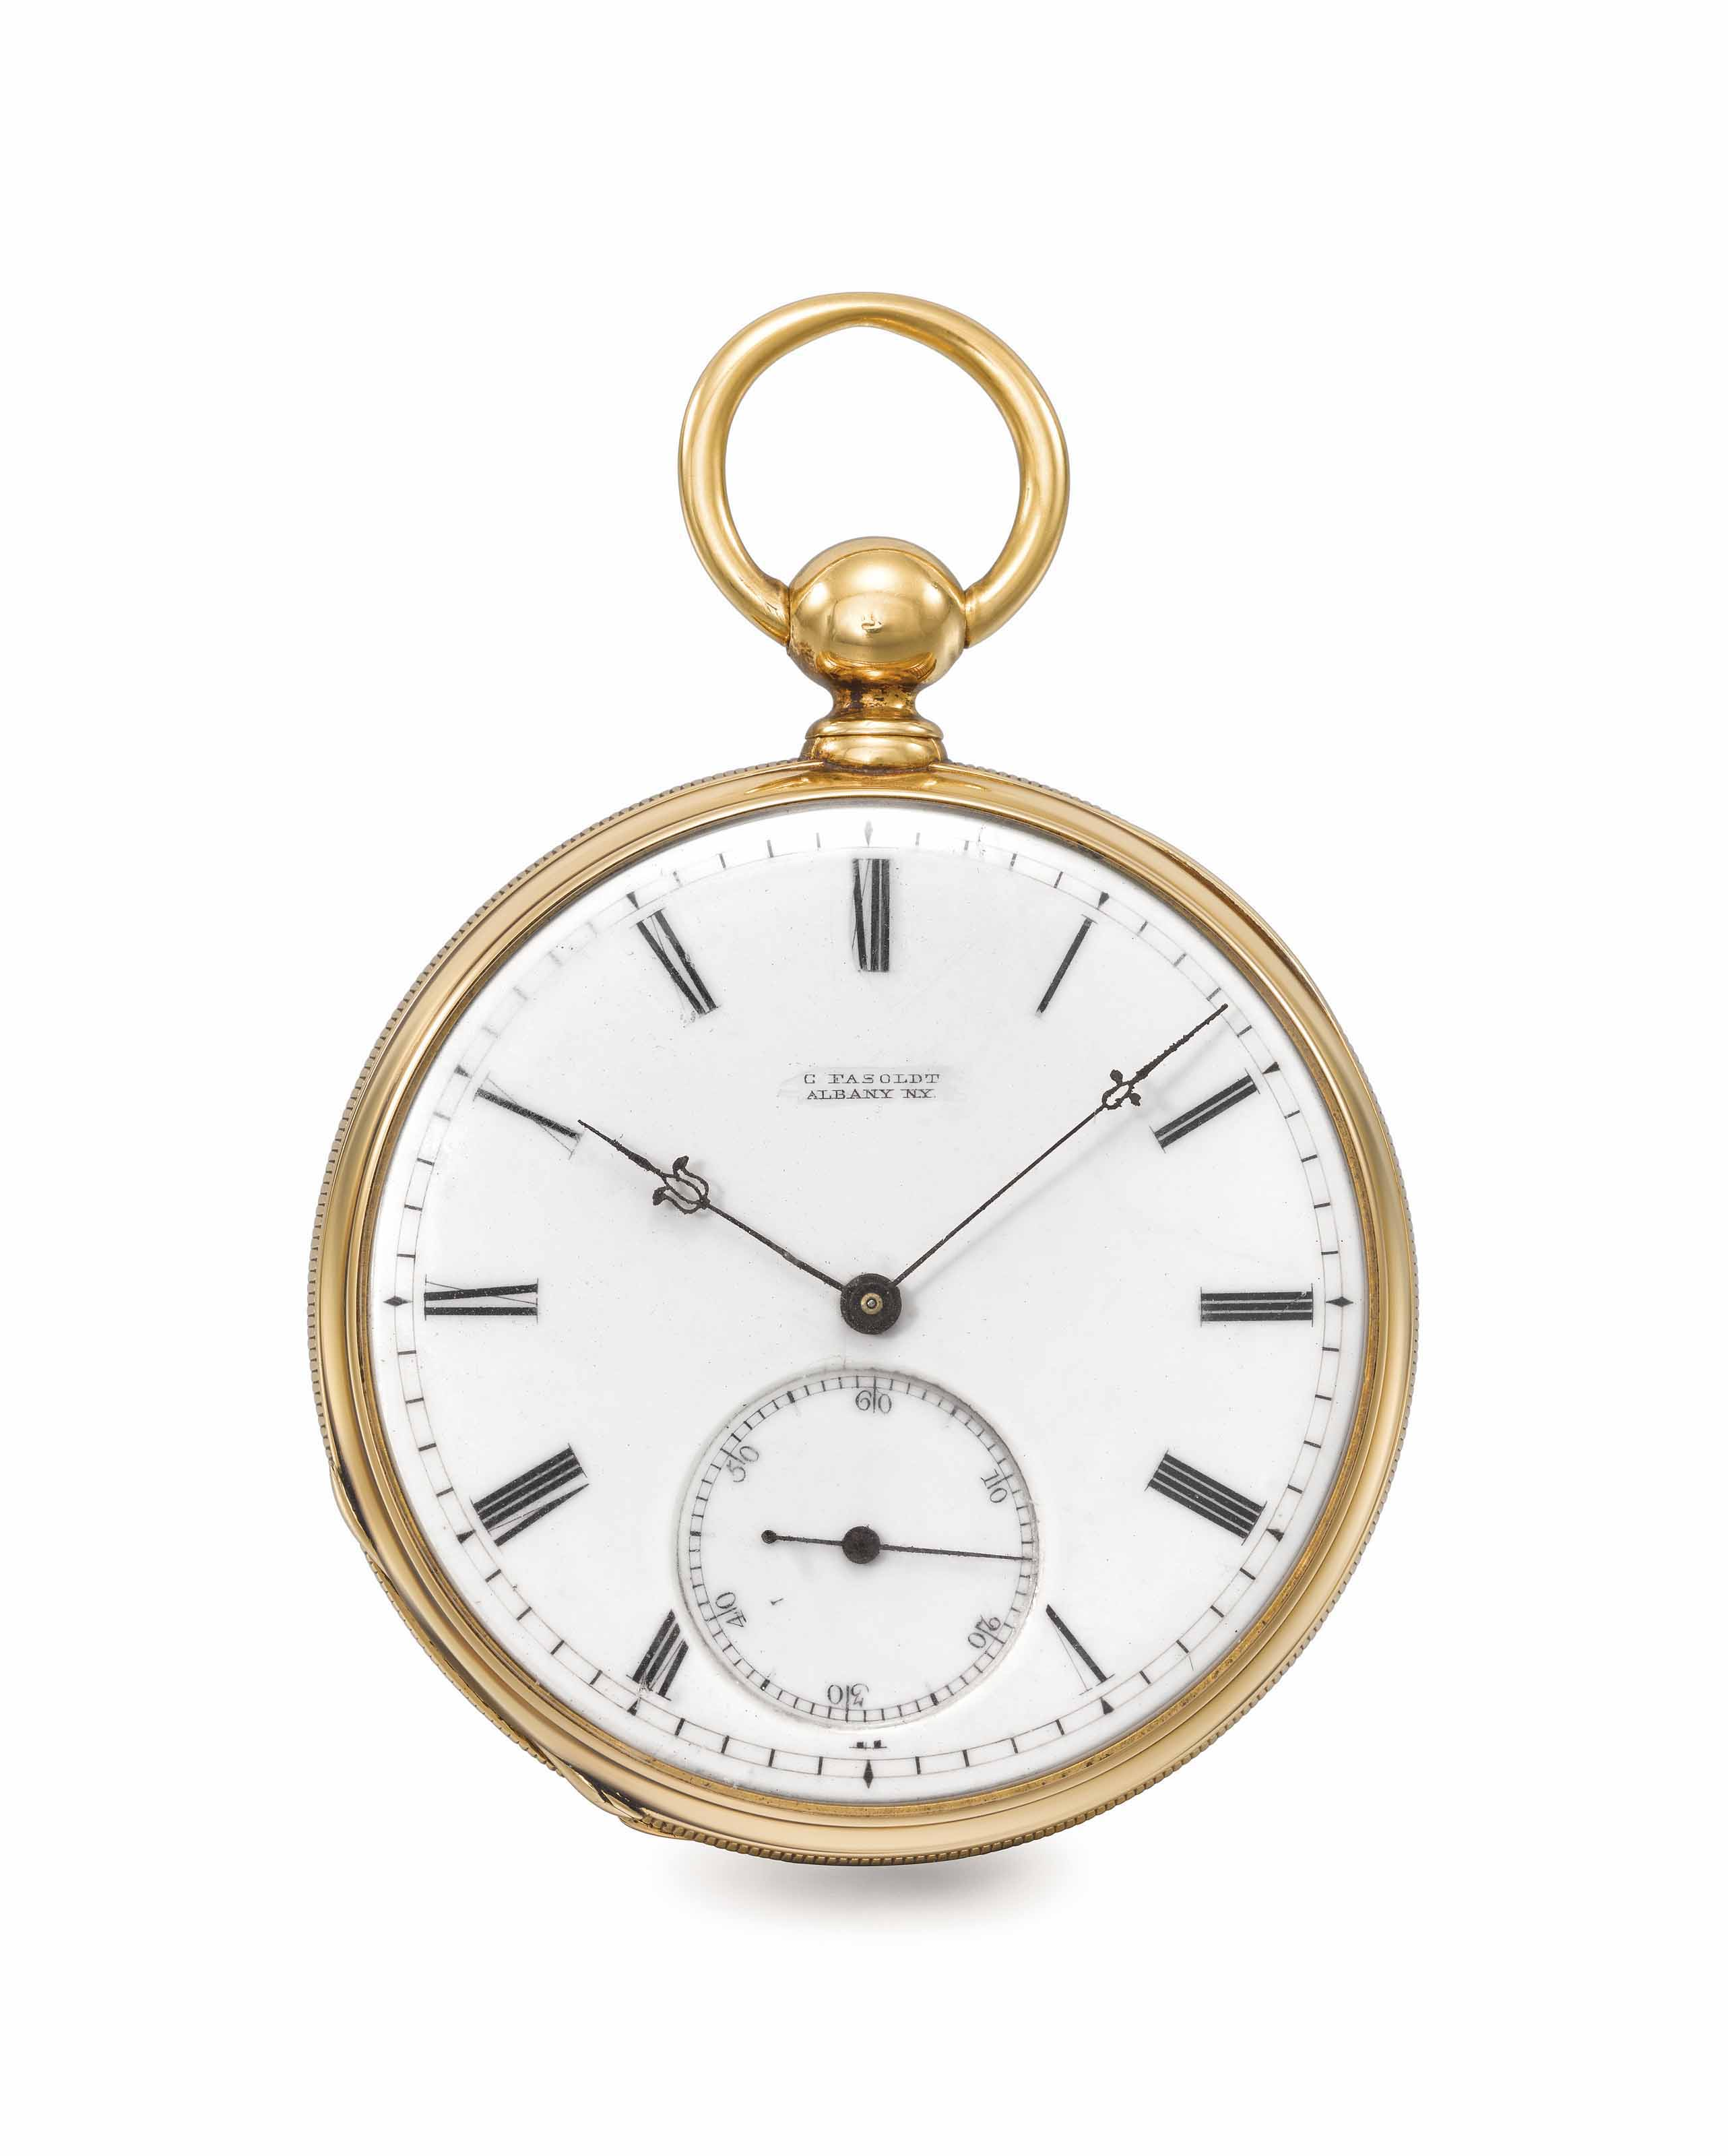 Charles Fasoldt. A fine and extremely rare 18K gold openface pocket chronometer with Fasoldt's patented double-wheel escapement